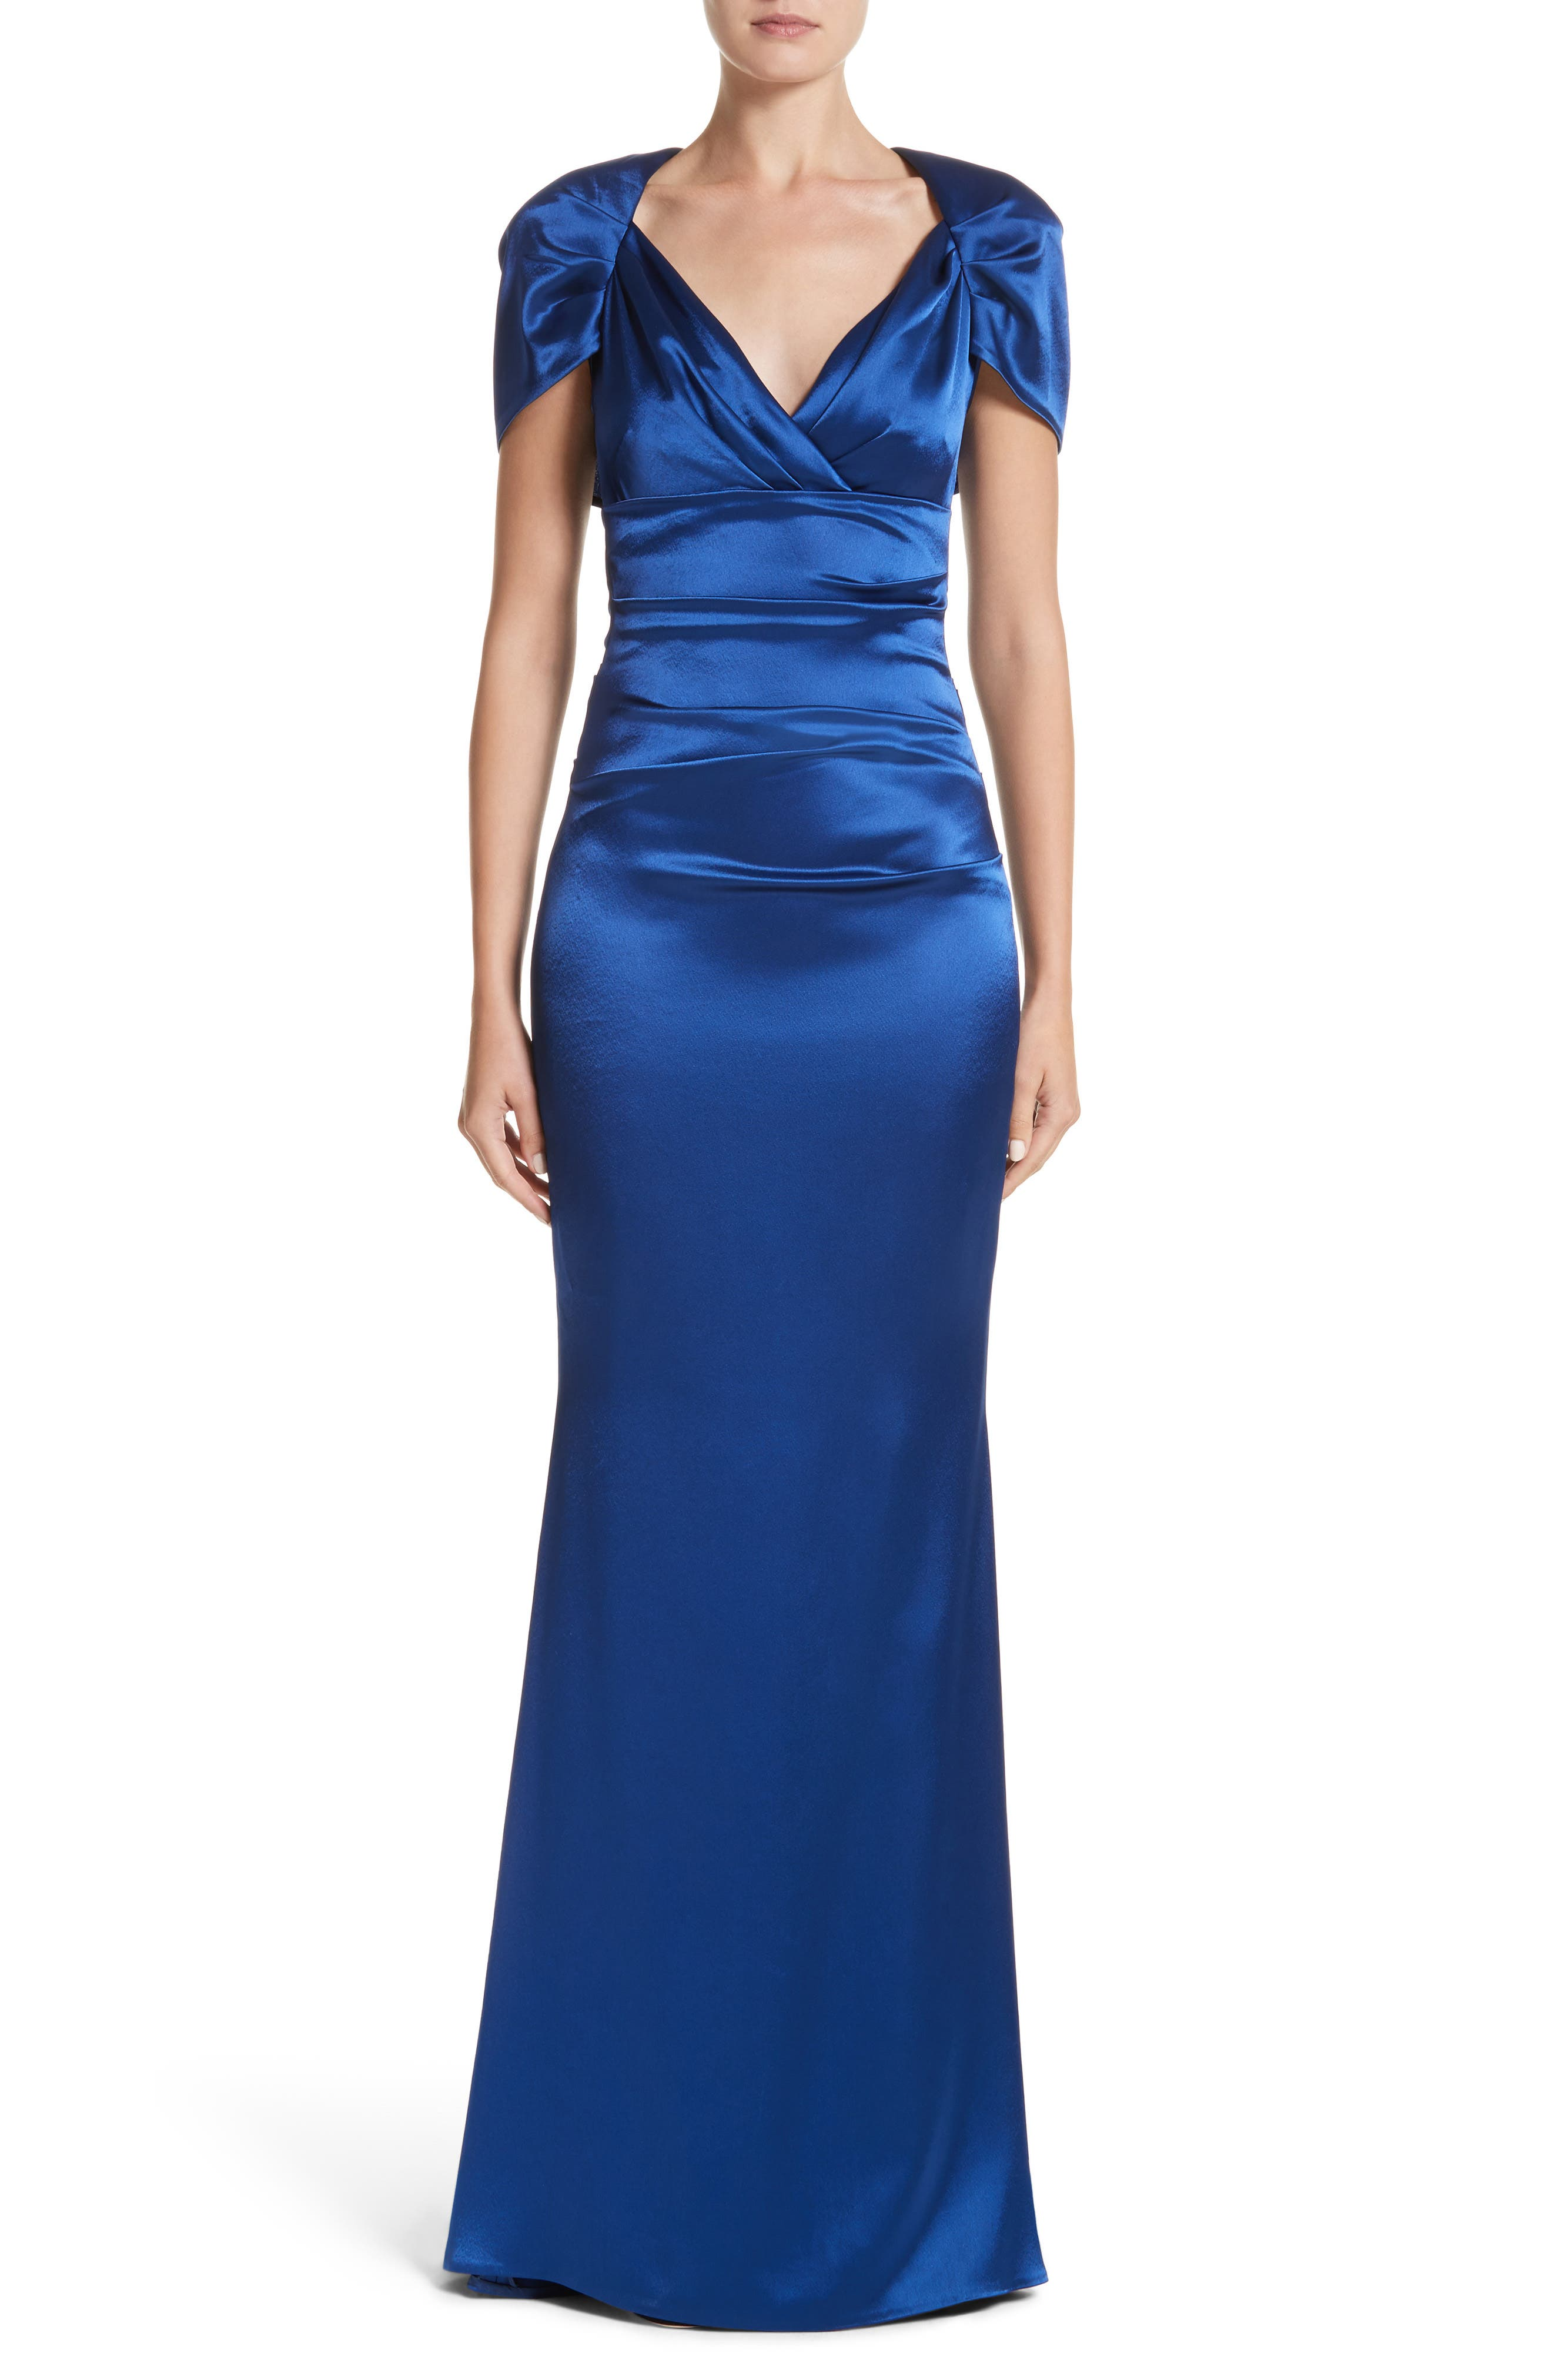 Pleated Satin Mermaid Gown,                             Main thumbnail 1, color,                             ENZIAN/ ROYAL